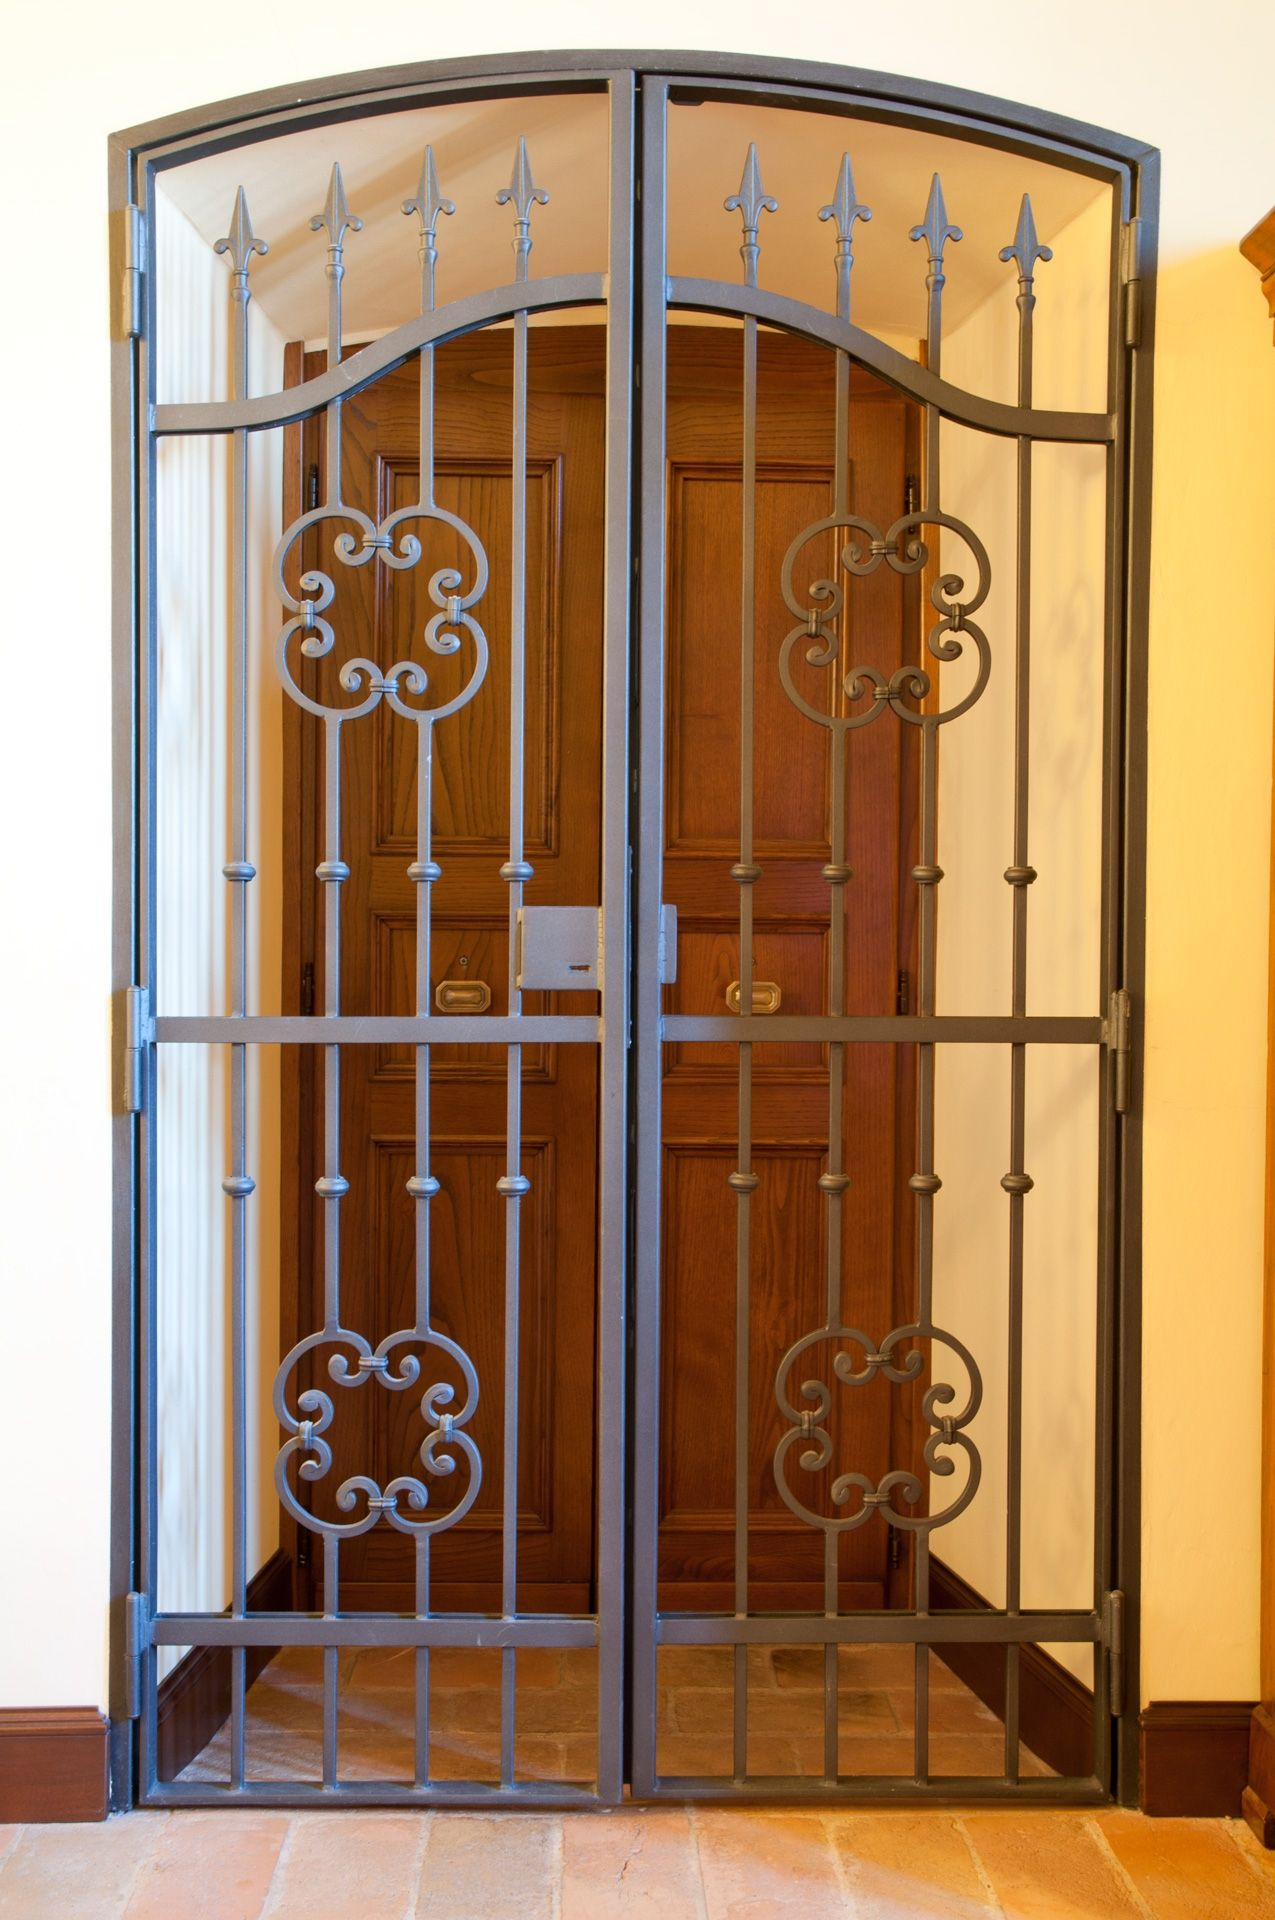 Ordinaire Security Front Door Gate